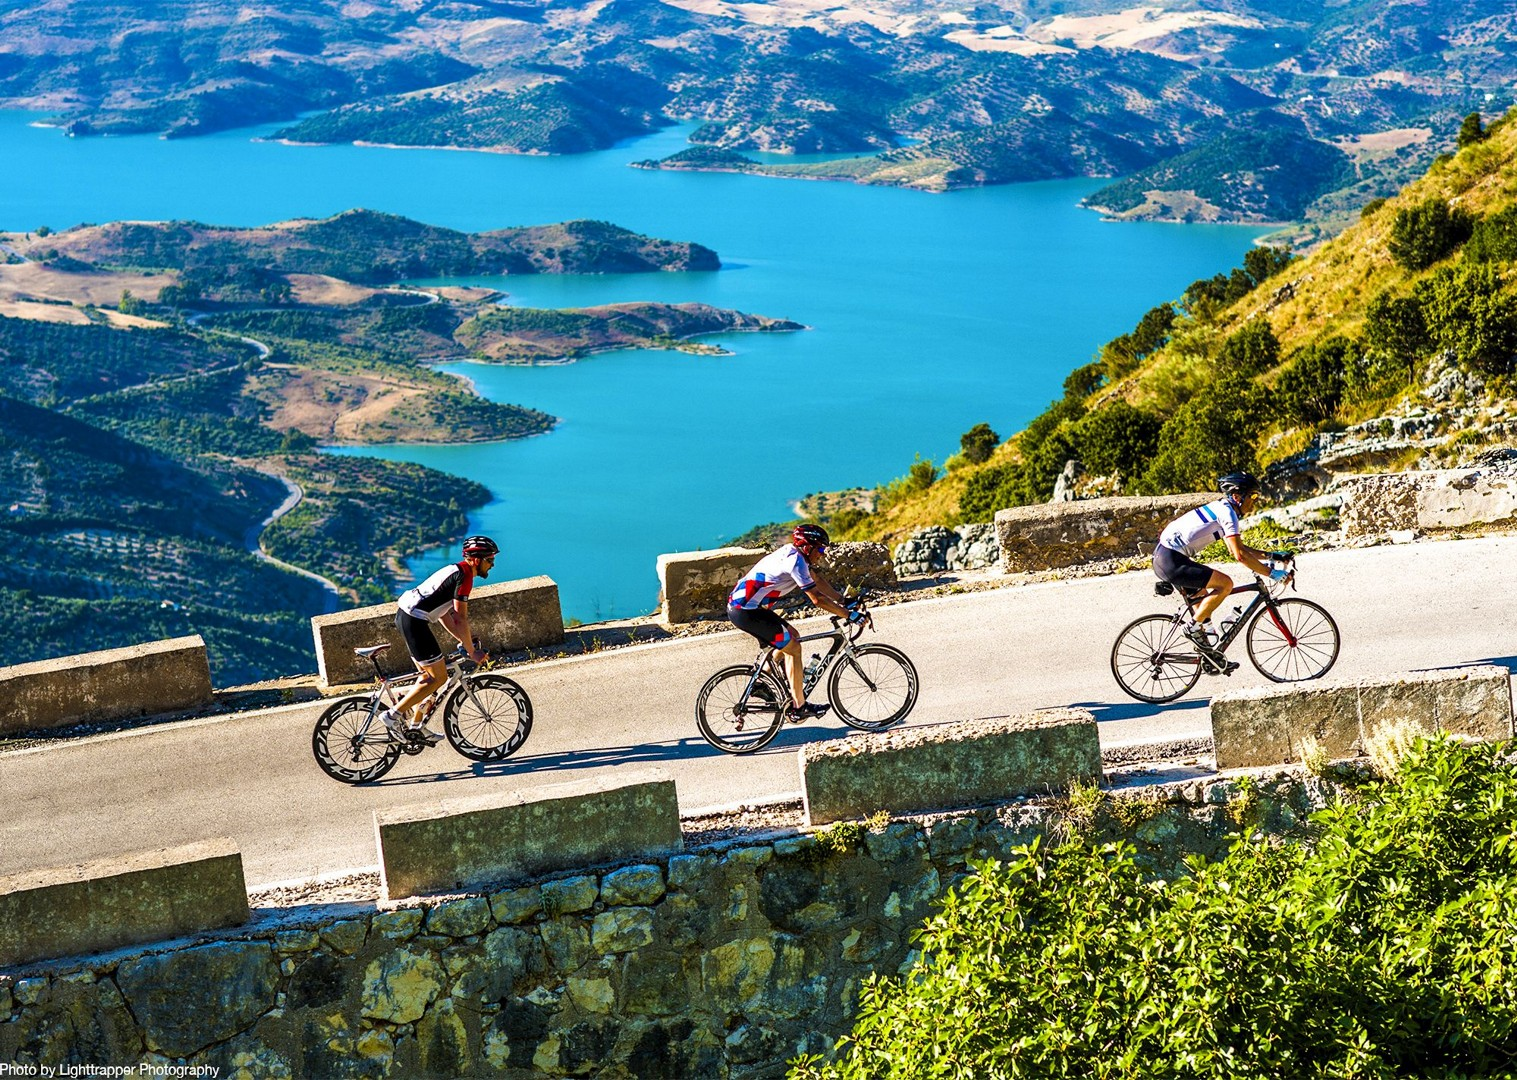 road-cycling-spain-puert-de-las-palomas-guided-cycling-tour.jpg - Southern Spain - Andalucia - Los Pueblos Blancos - Road Cycling